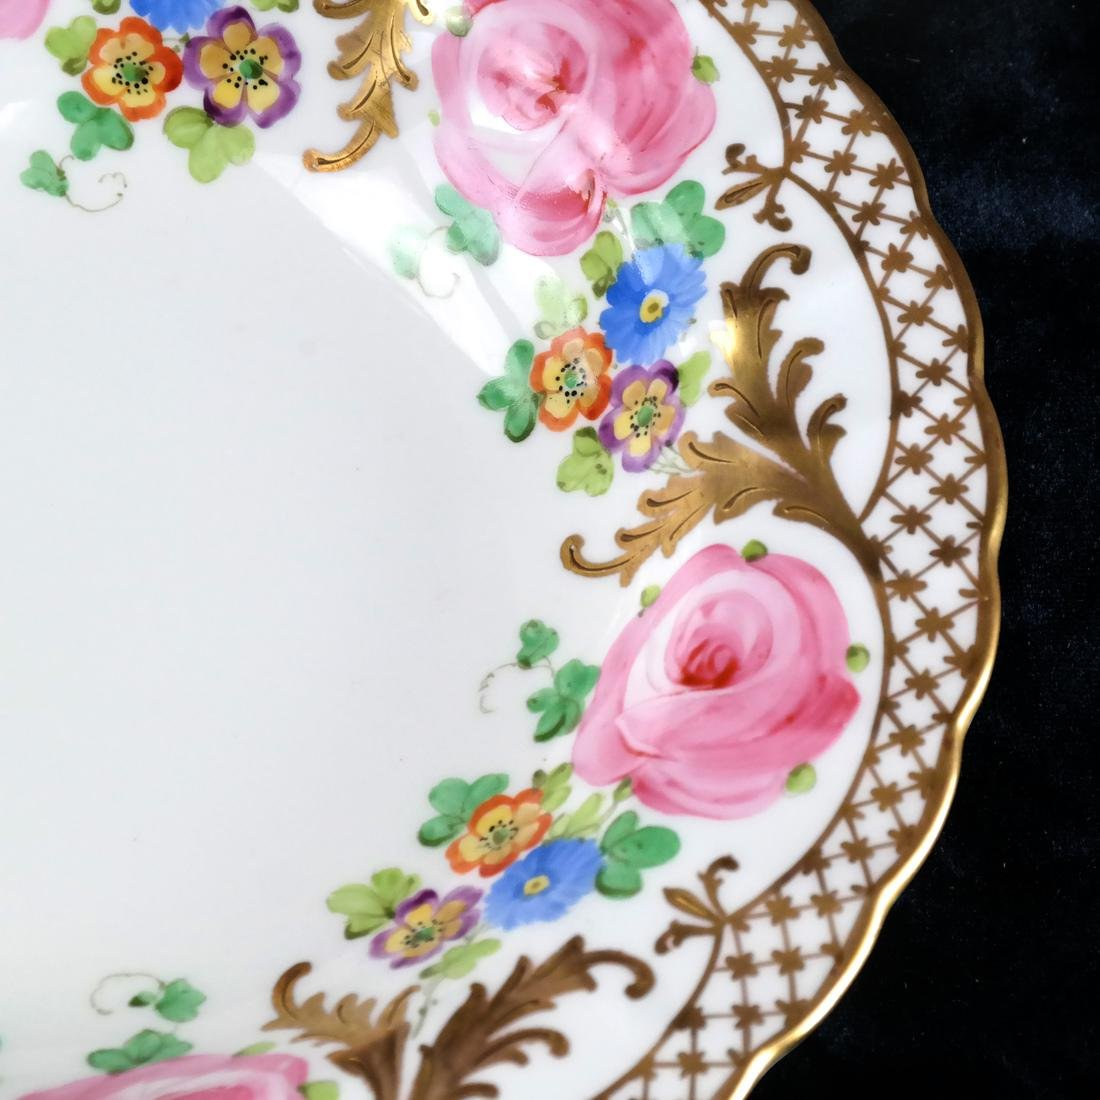 8 Crown, England Floral Decorated Bowls - 4